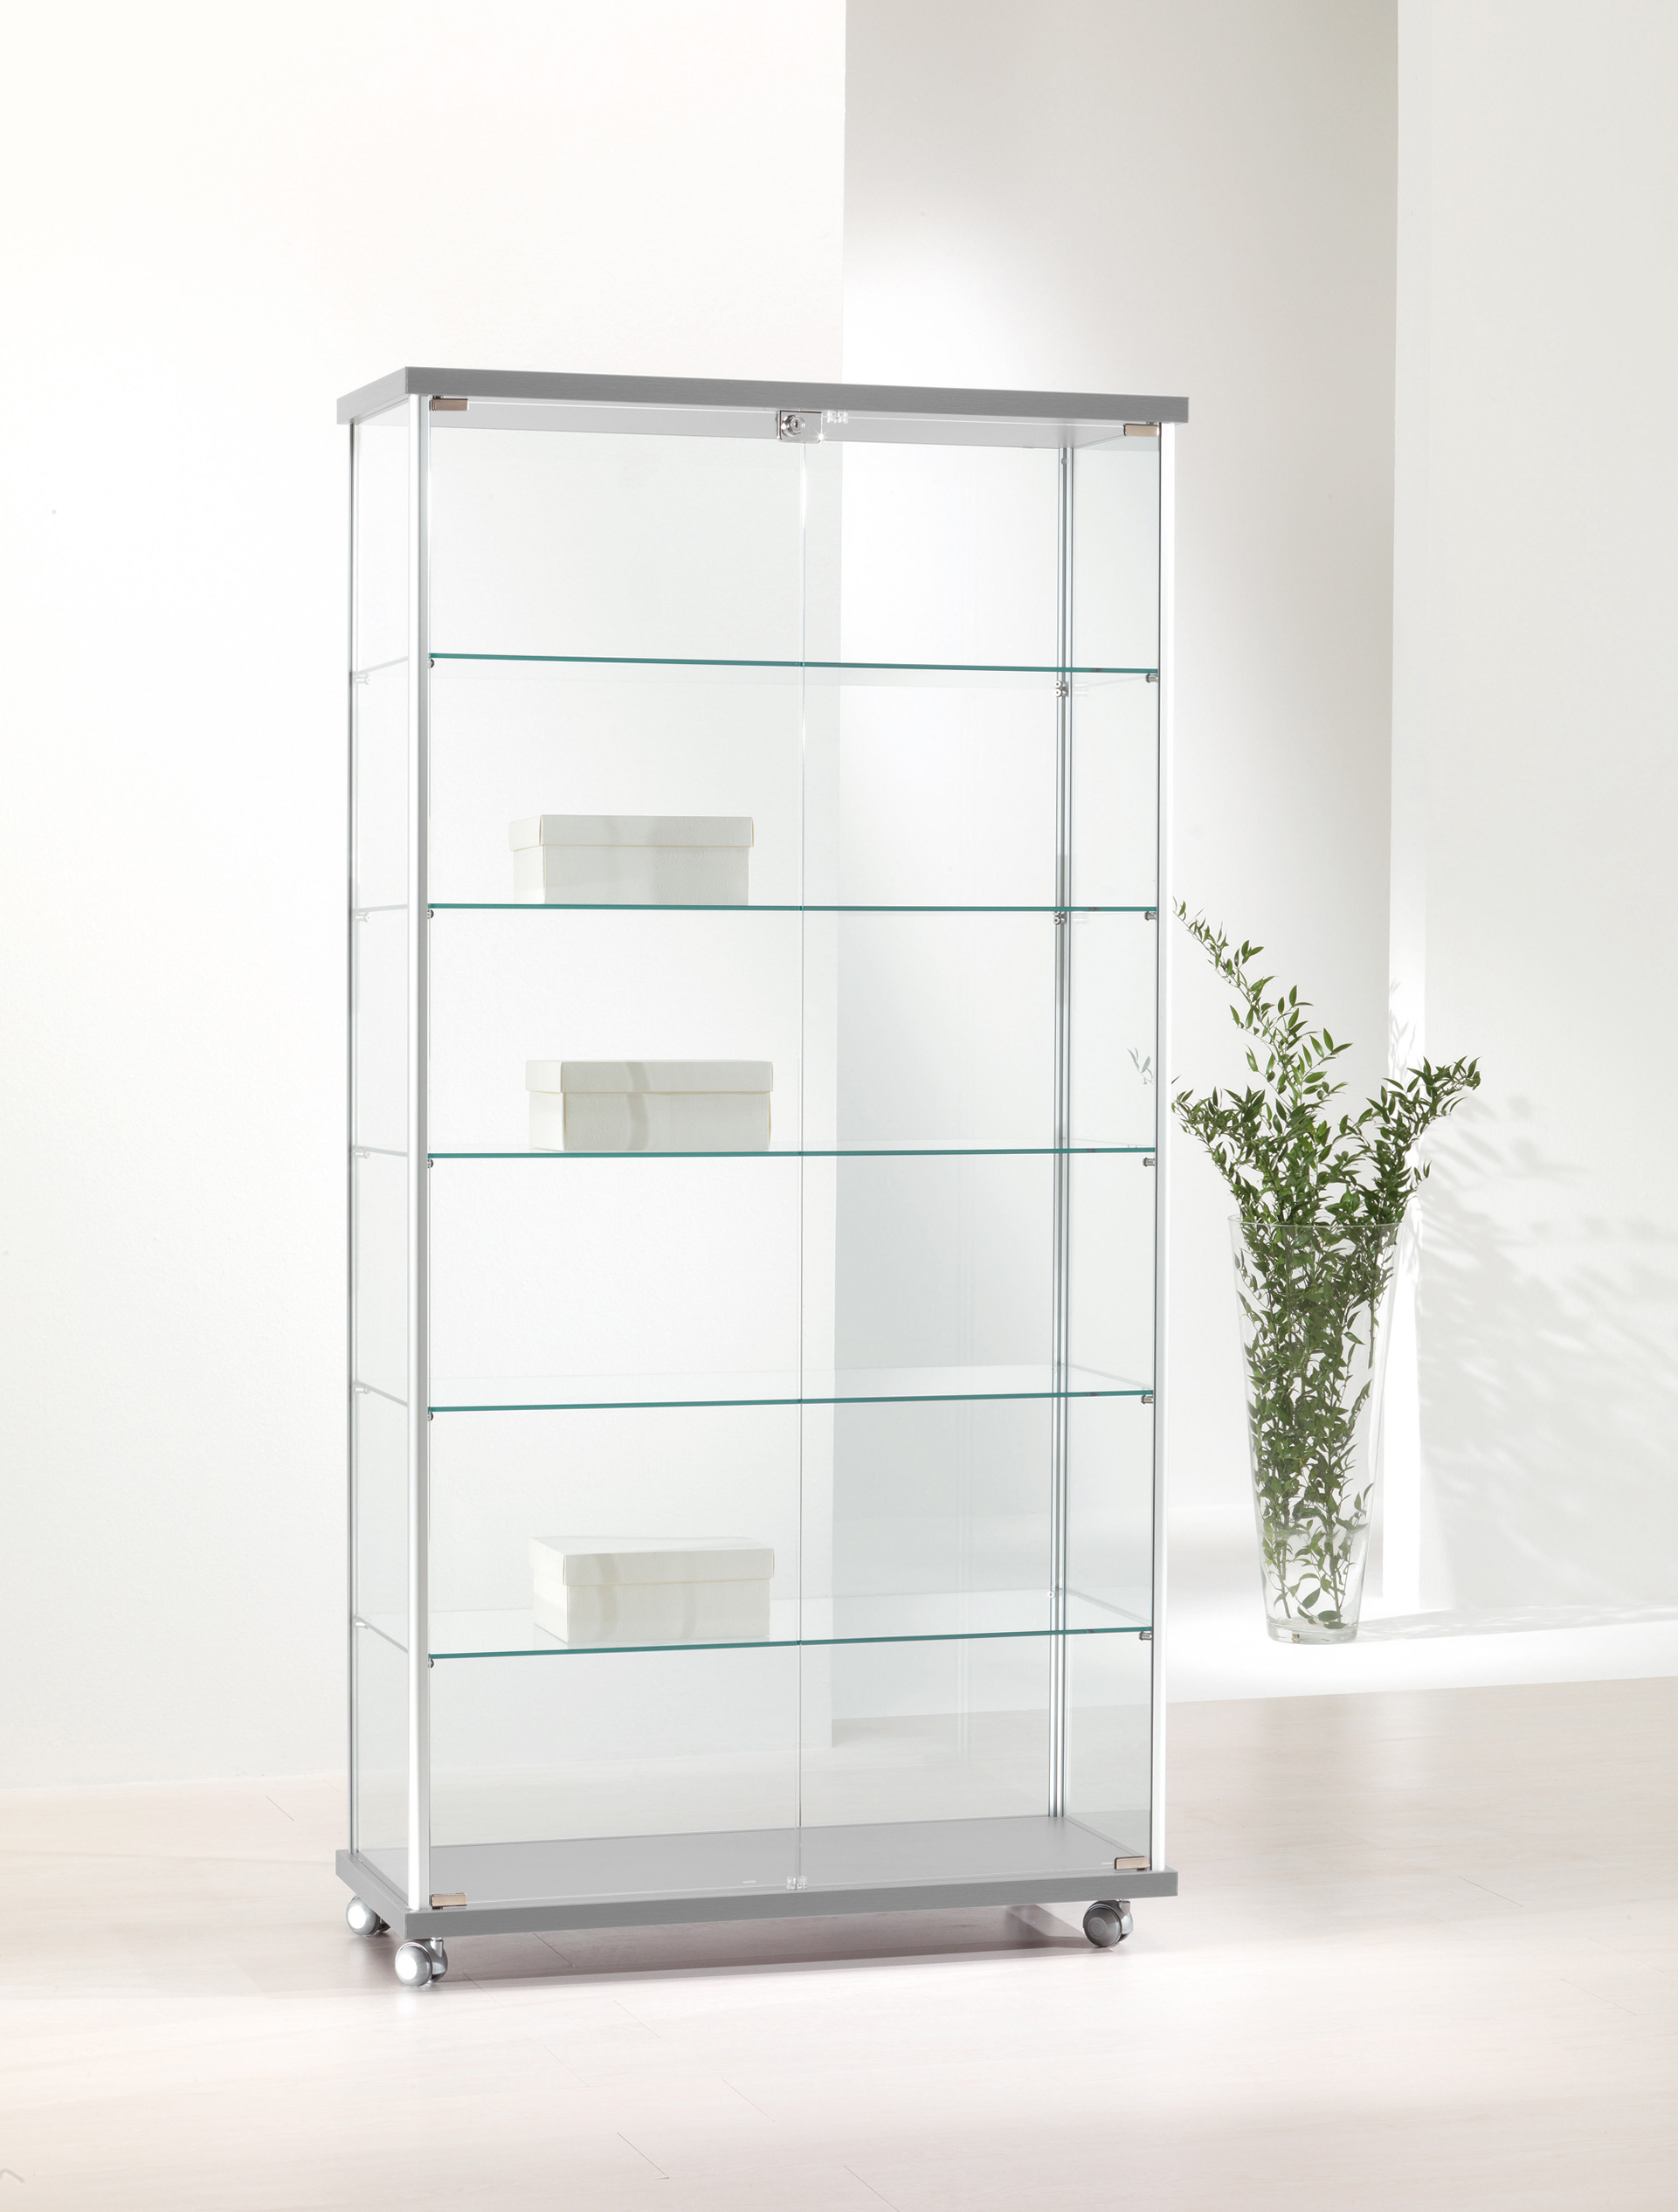 Tempered glass showcase